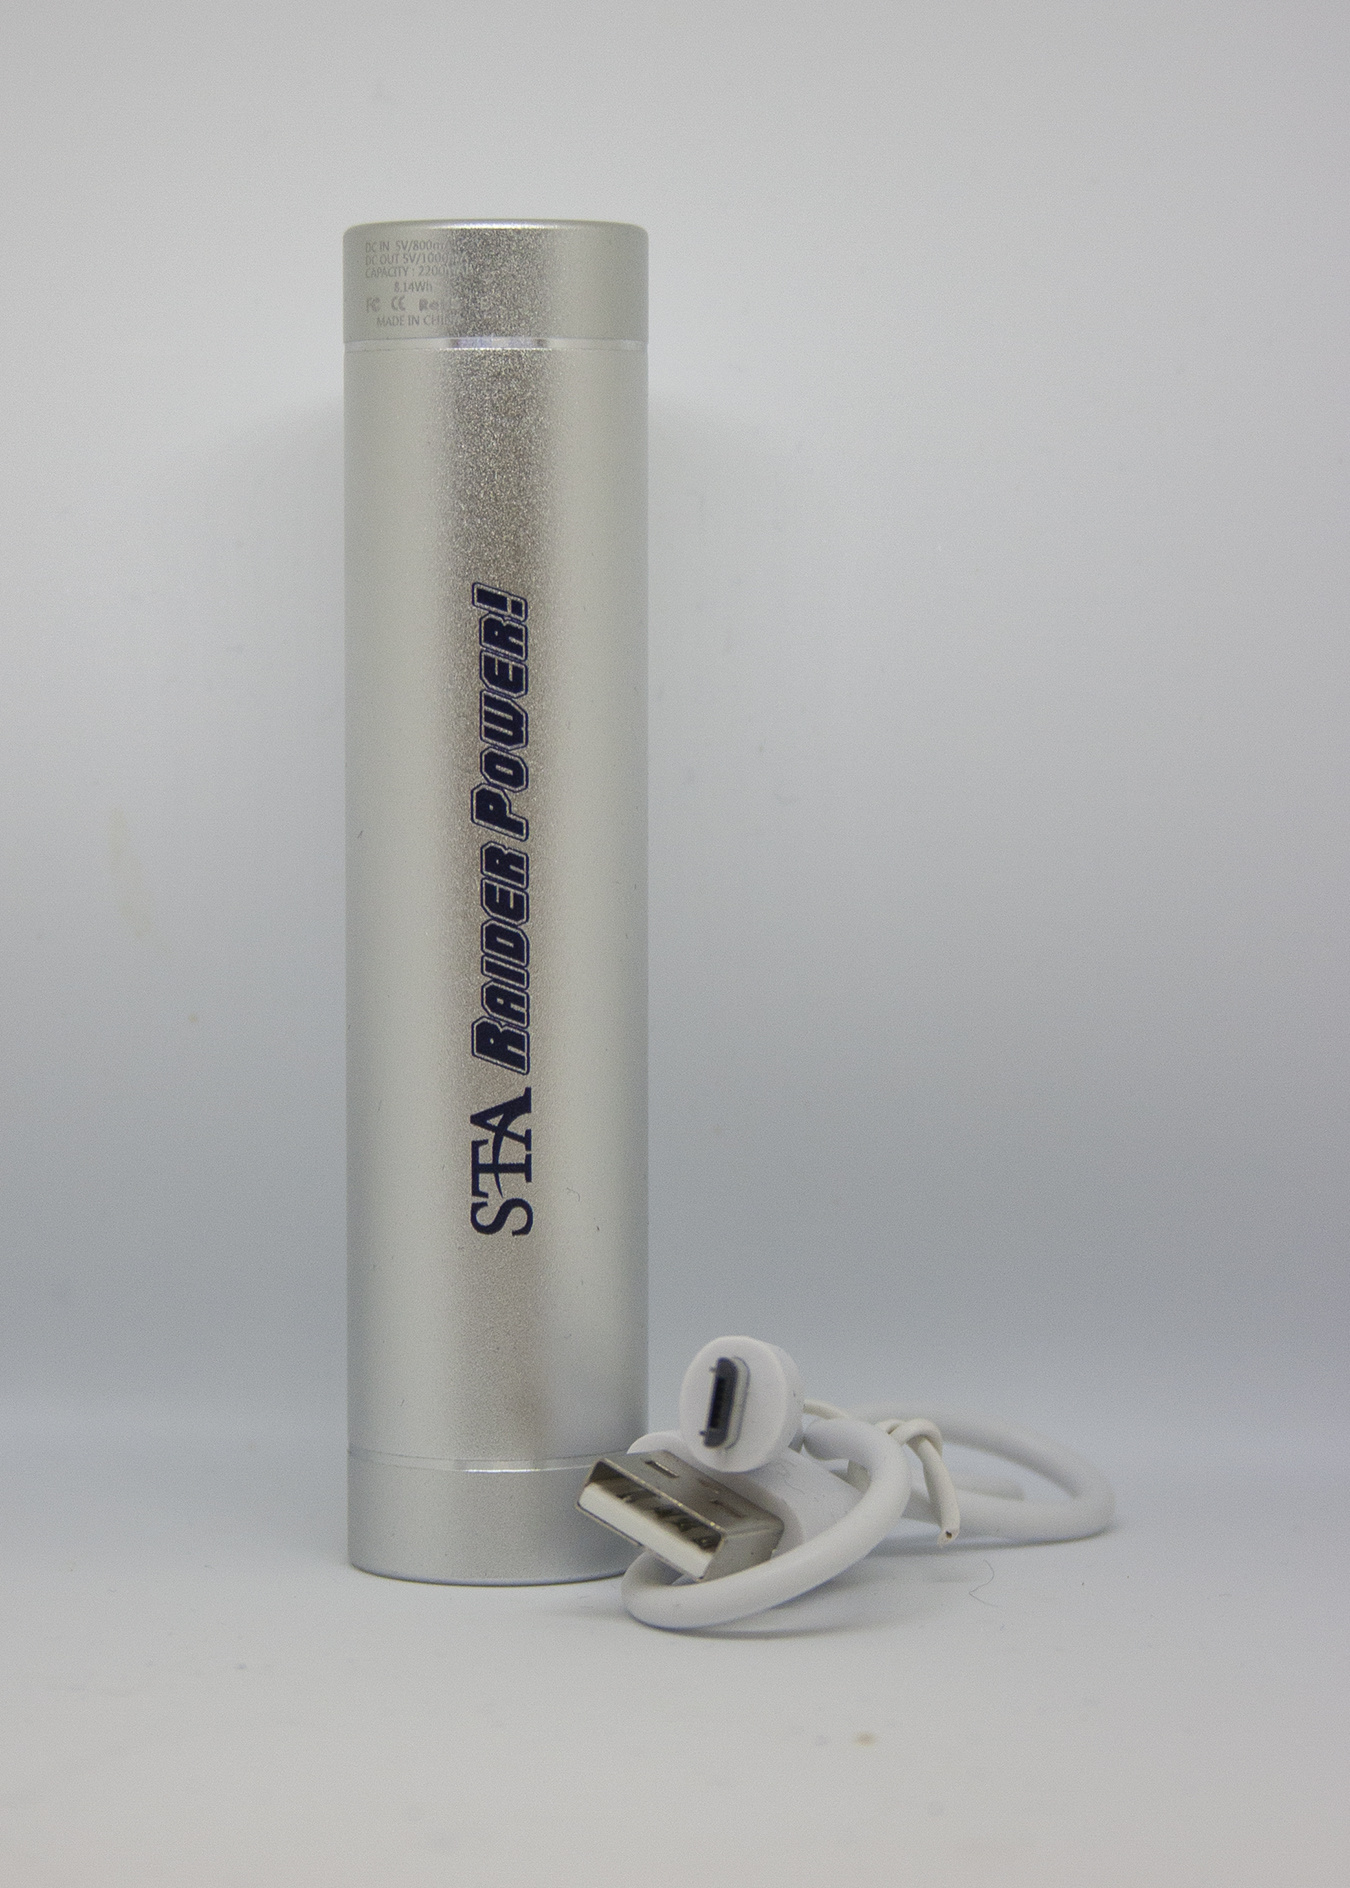 Power Bank-Charger